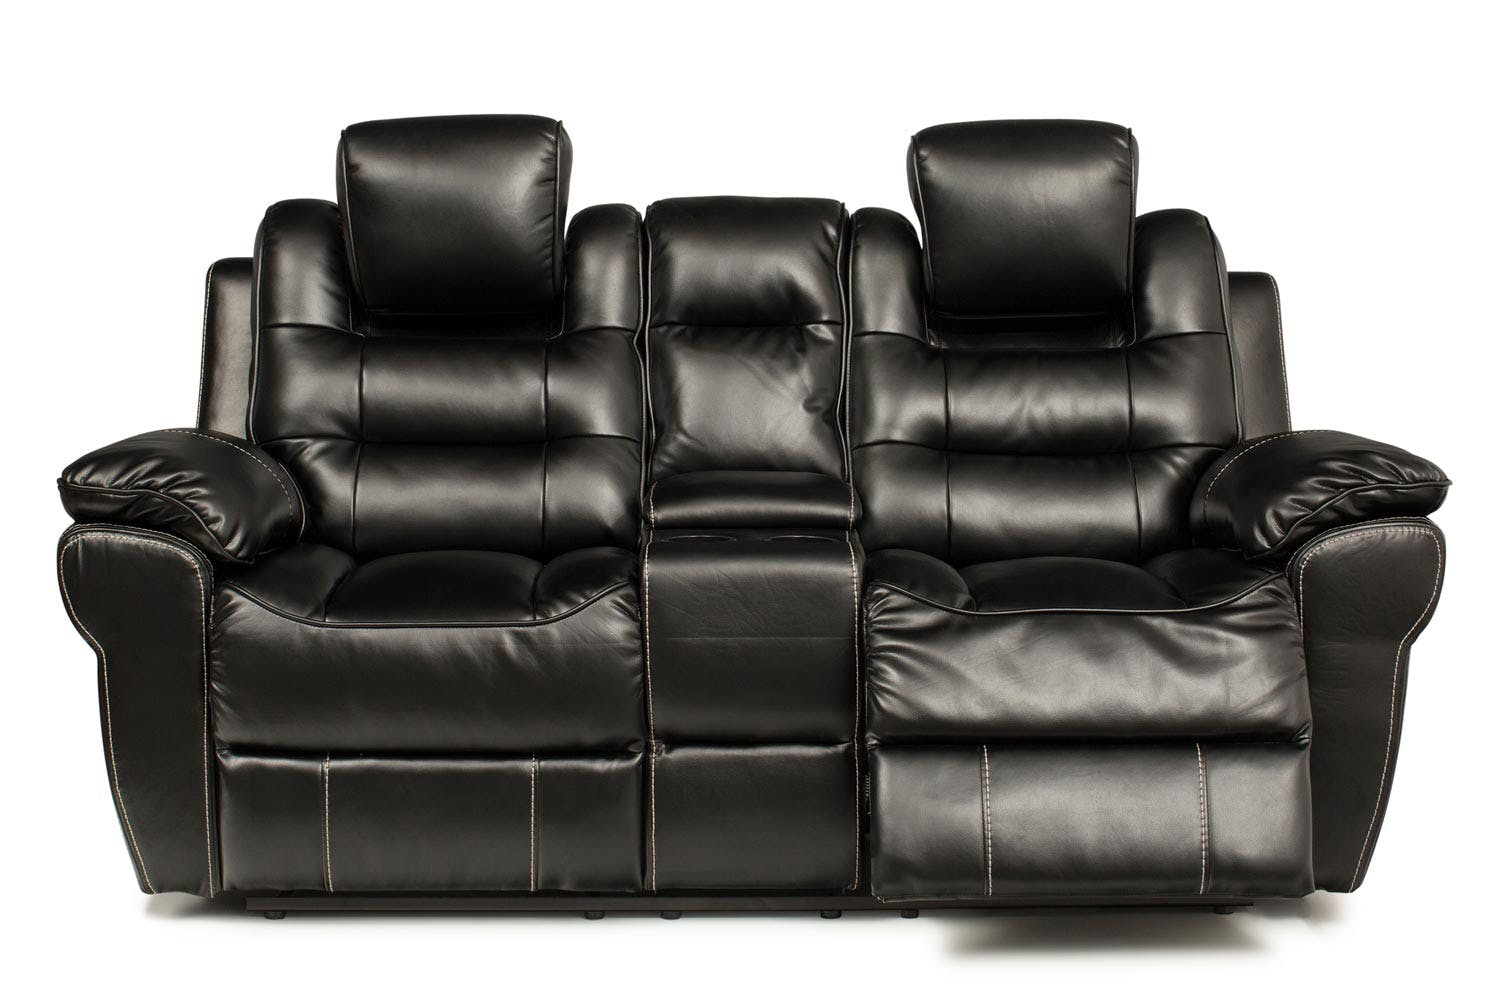 Baxter 2 Seater Electric Recliner With